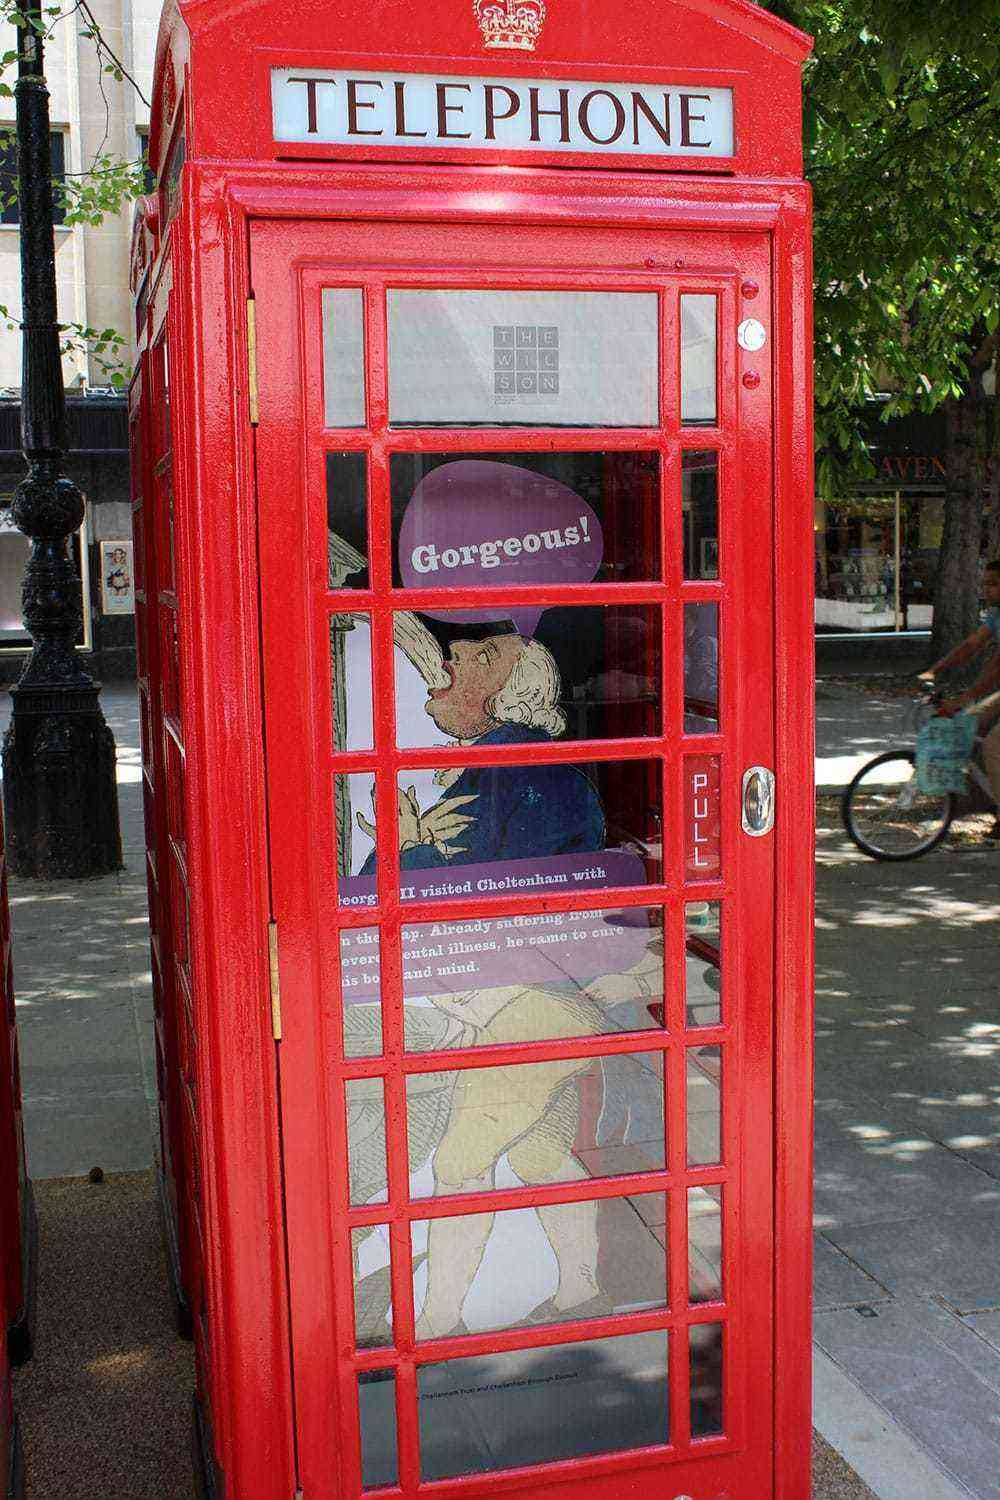 11 Weird Ways Britain's Iconic Telephone Boxes Have Been Repurposed